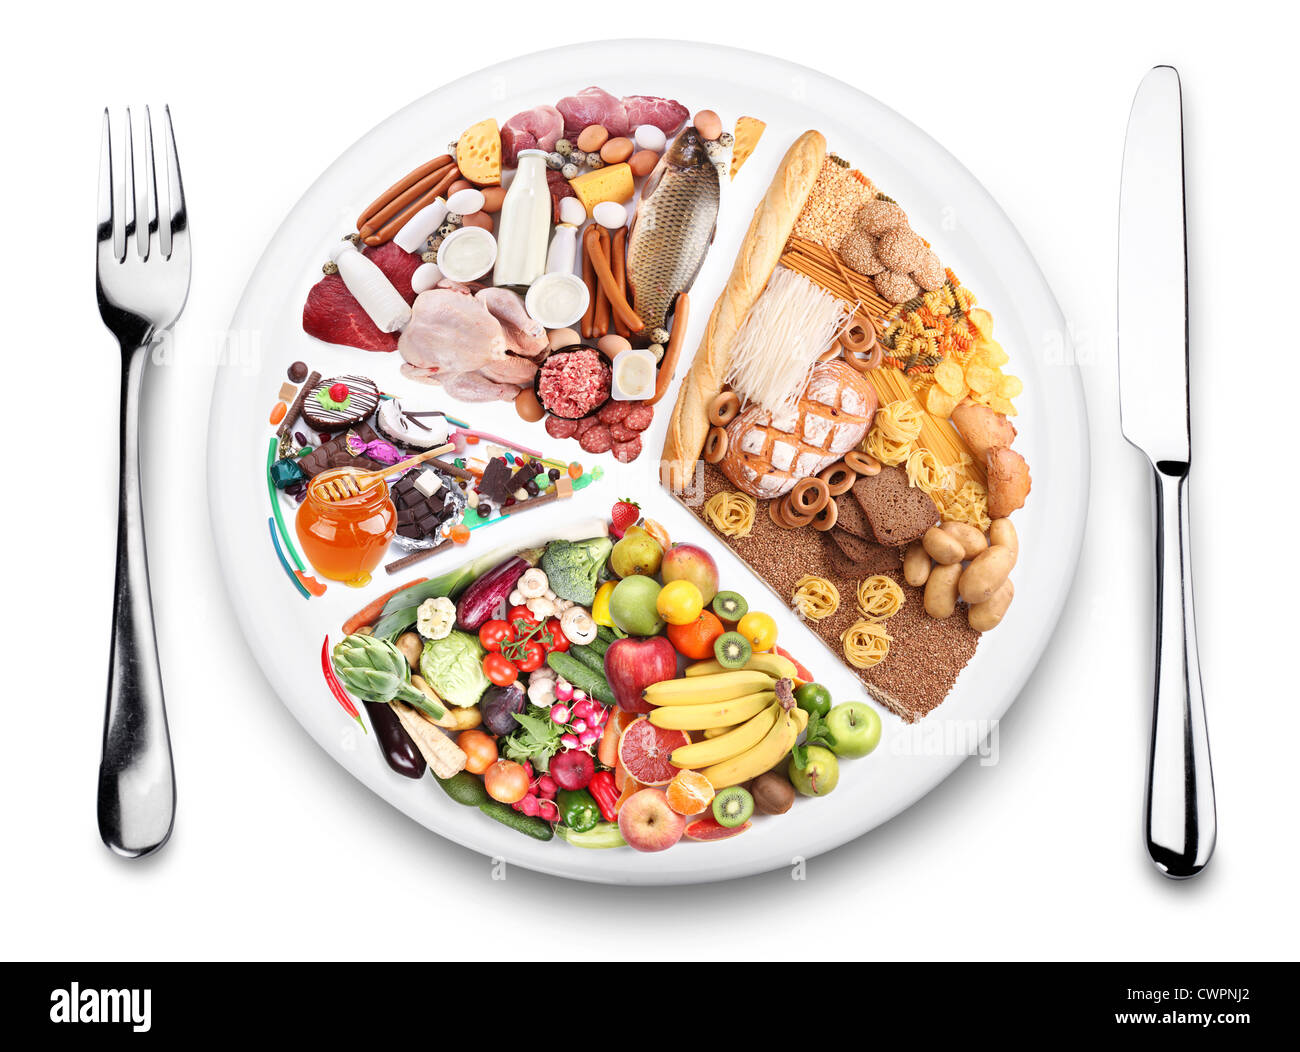 Food balance products on a plate. White background - Stock Image